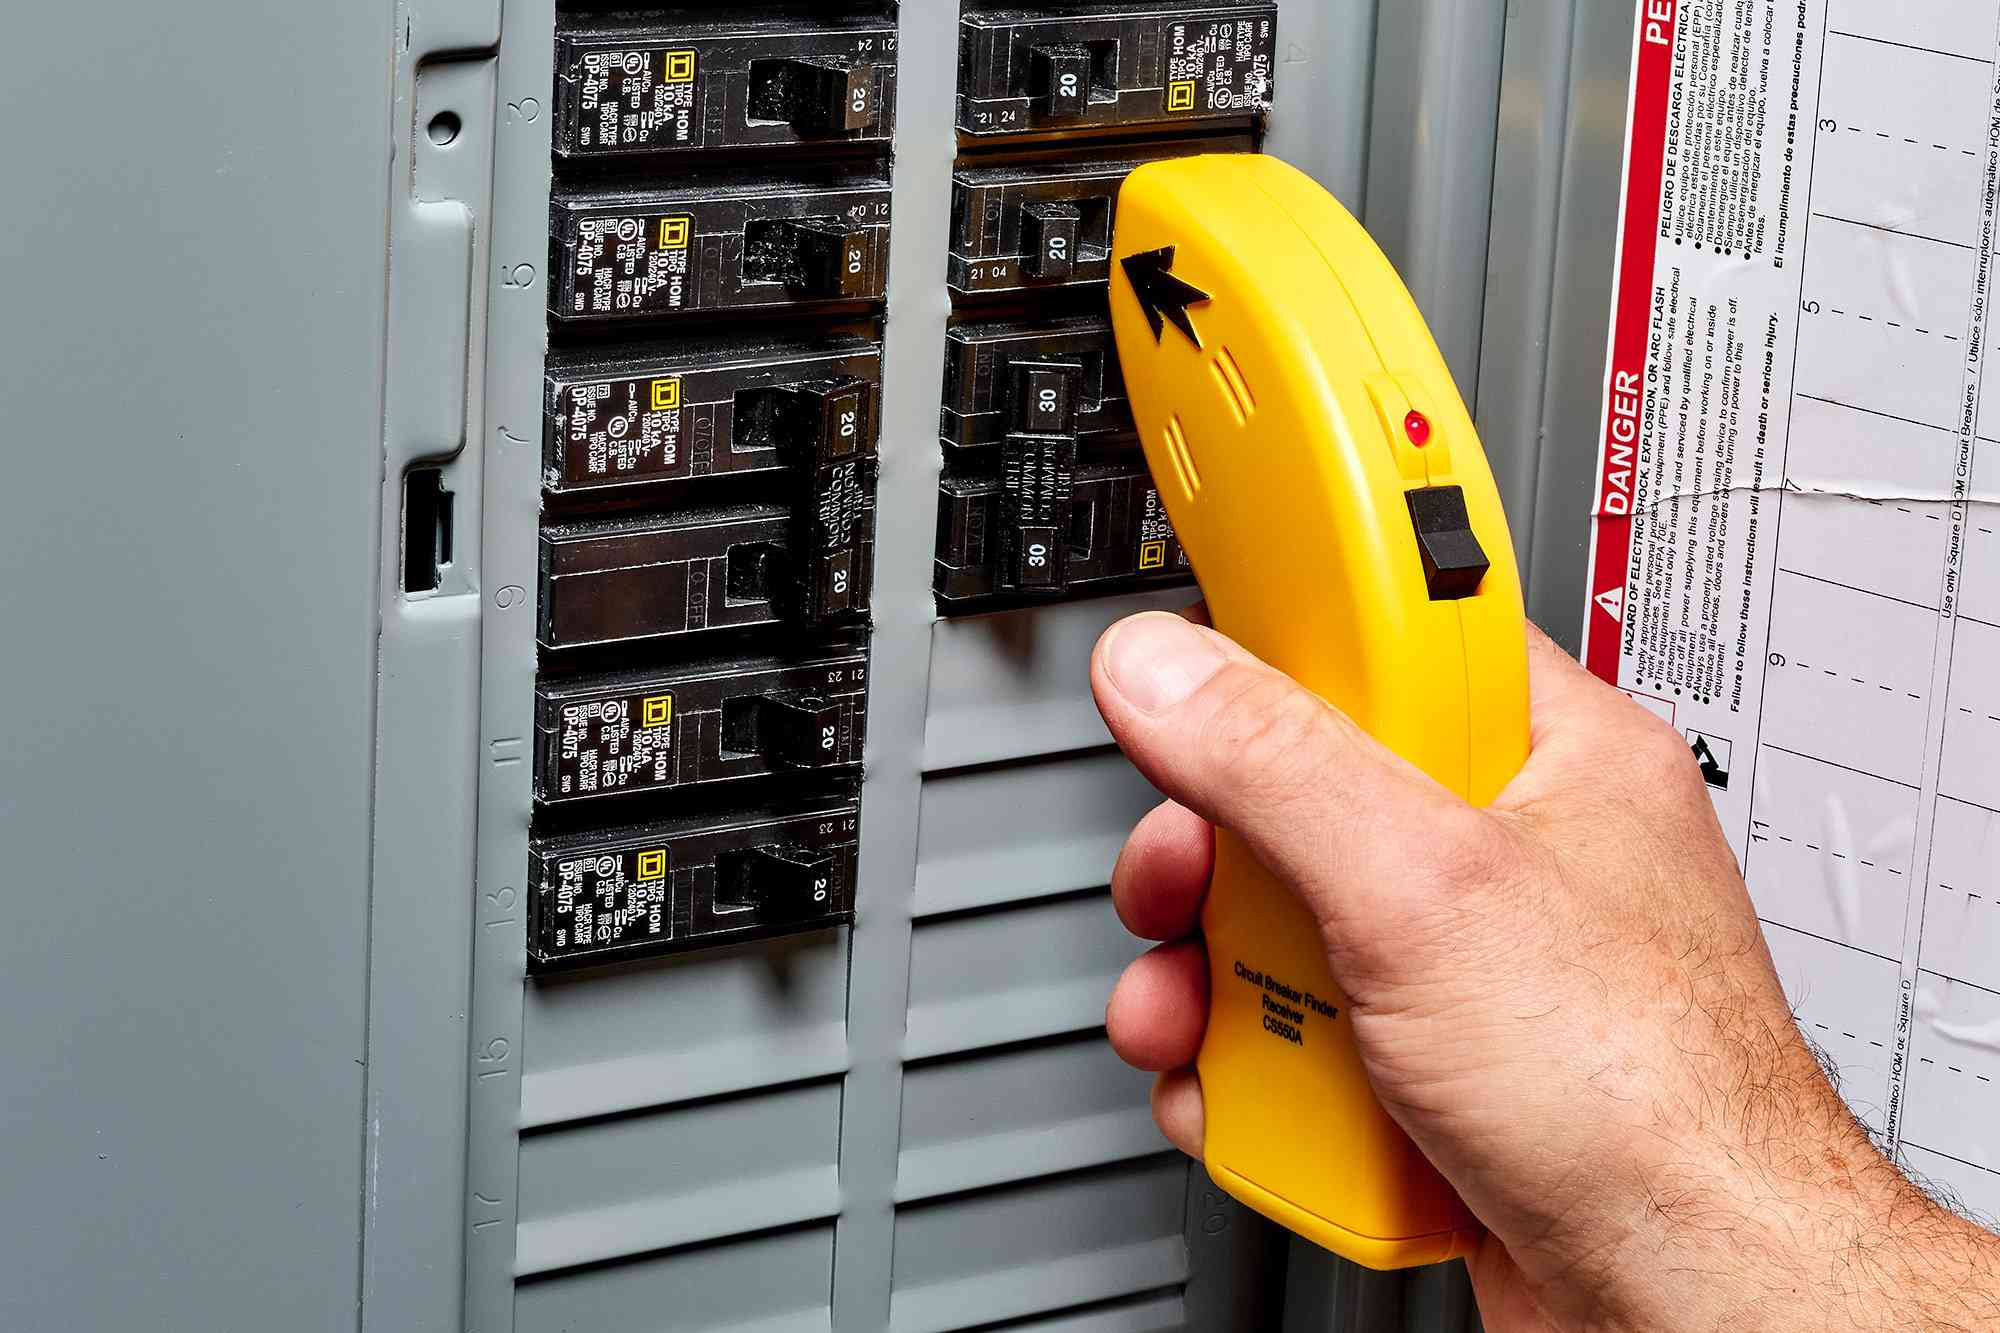 Circuit breaker box opened with receiver's sensor tip pointed to matching circuit breakers